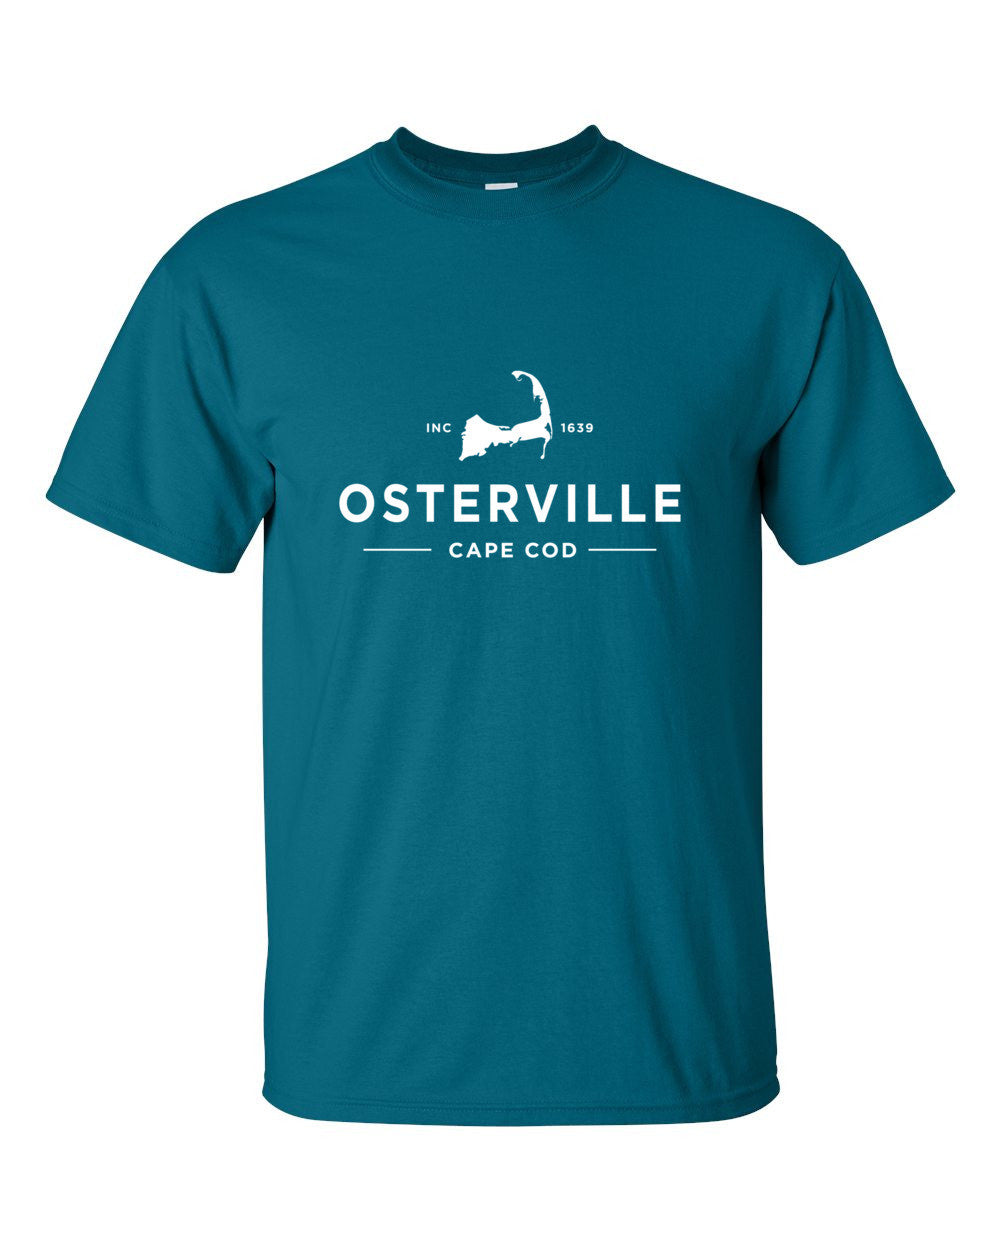 Osterville Cape Cod Short sleeve t-shirt